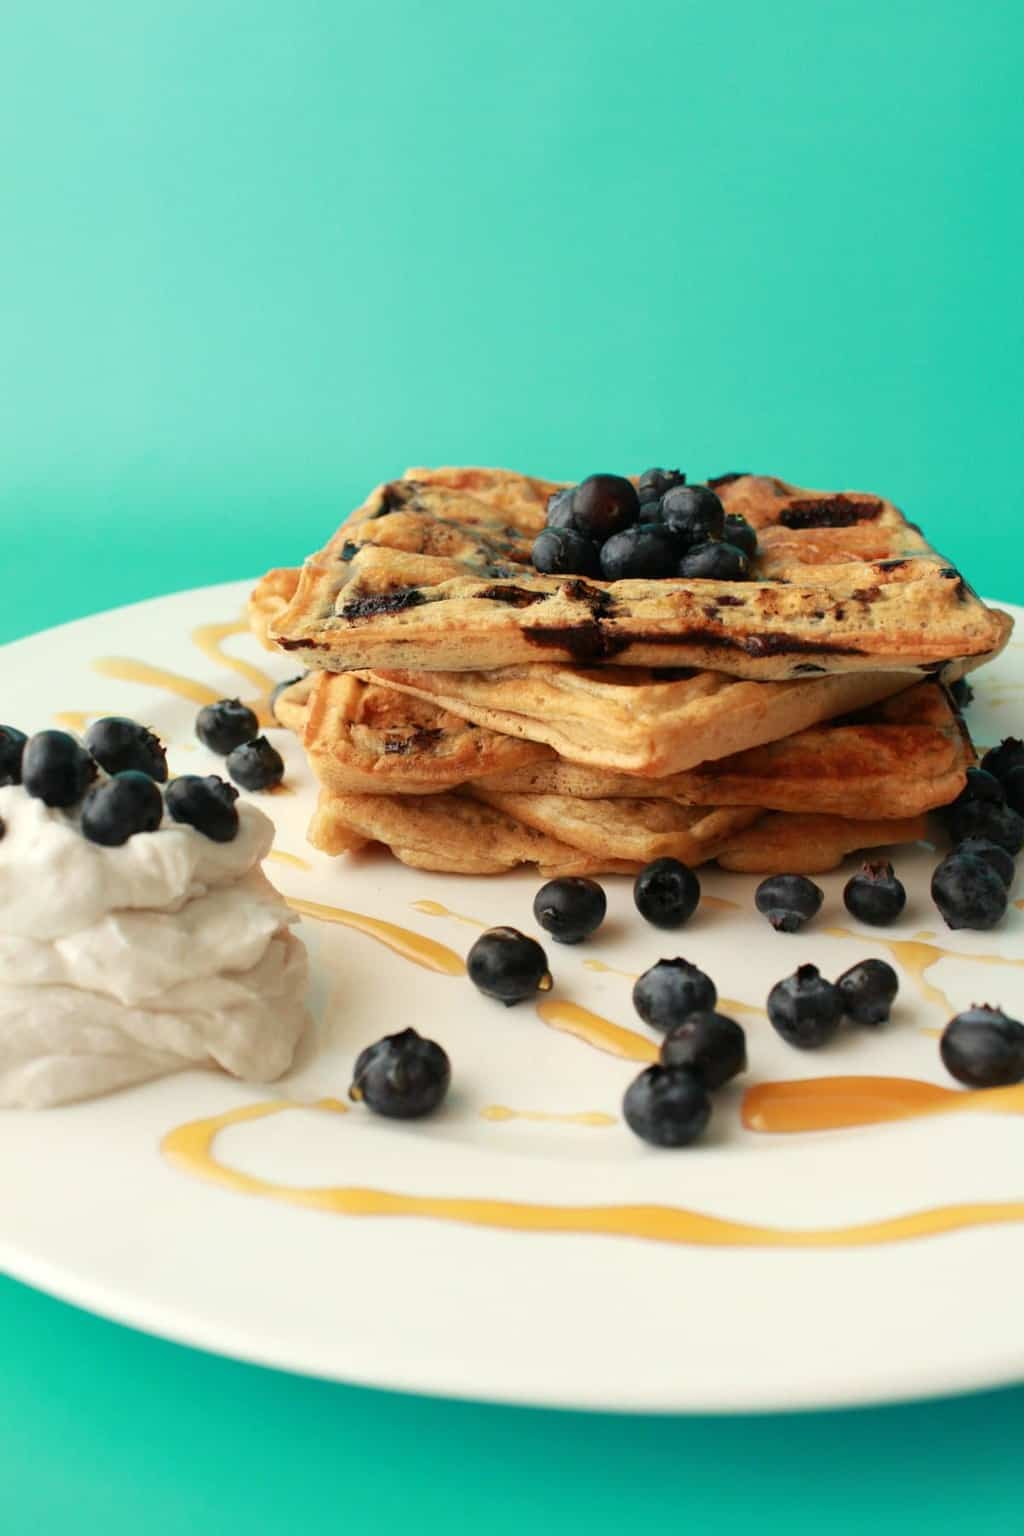 Vegan Blueberry Waffles. Delicious for breakfast with whipped coconut cream, fresh blueberries and maple syrup!